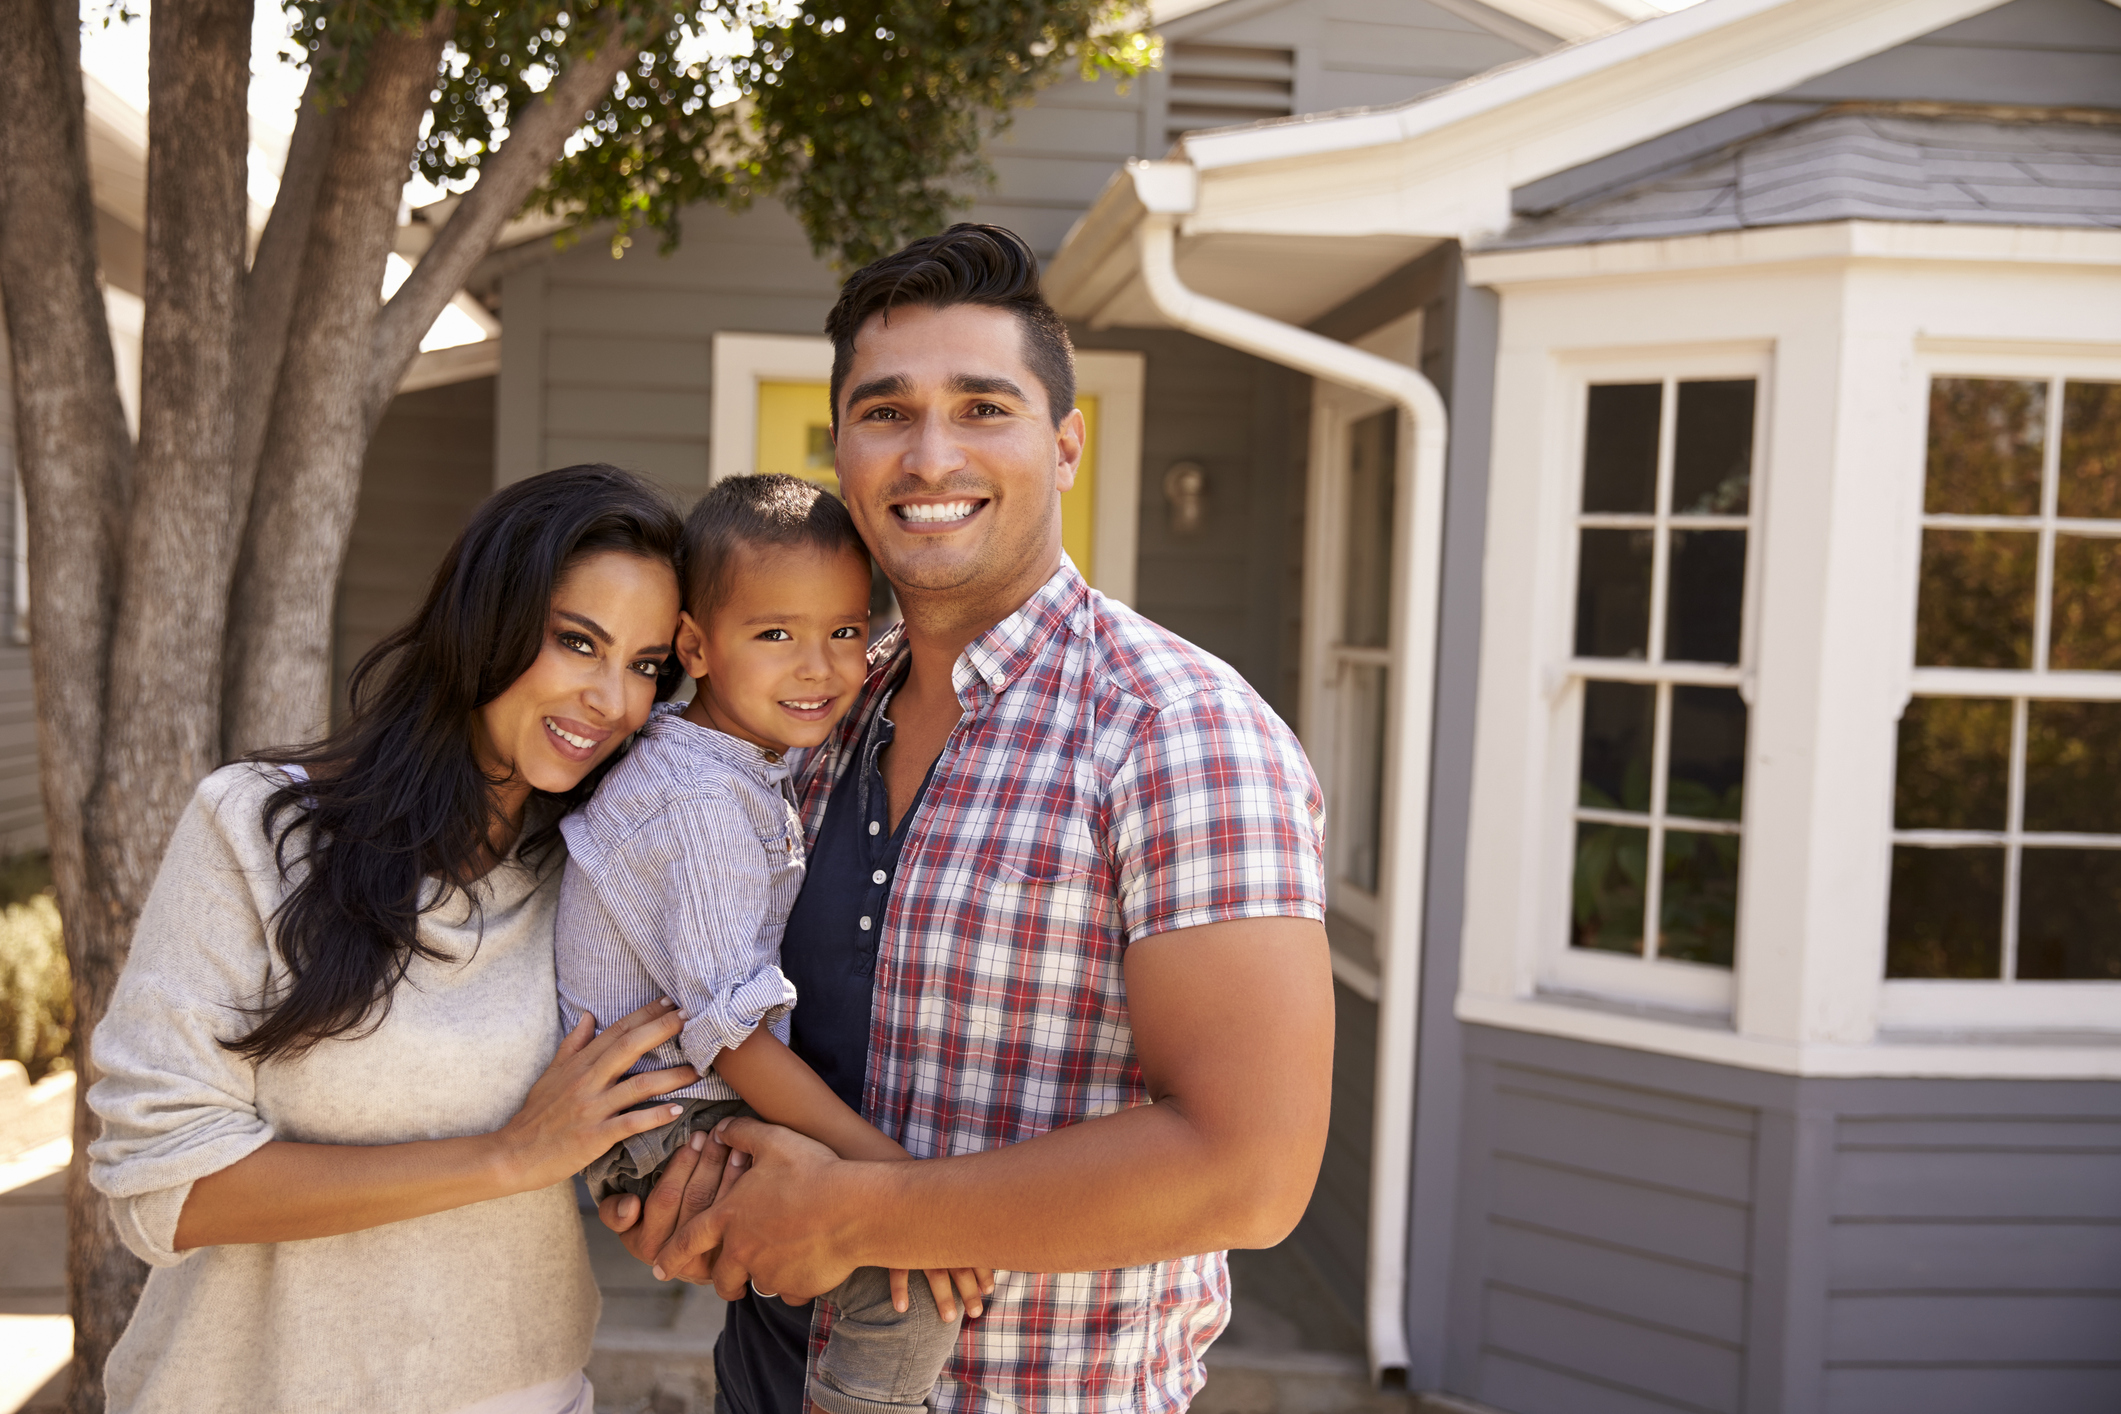 Already this year, the USDA Home LoanProgram has already helped thousands of families purchase their home. Find out today, how you can get yours. -